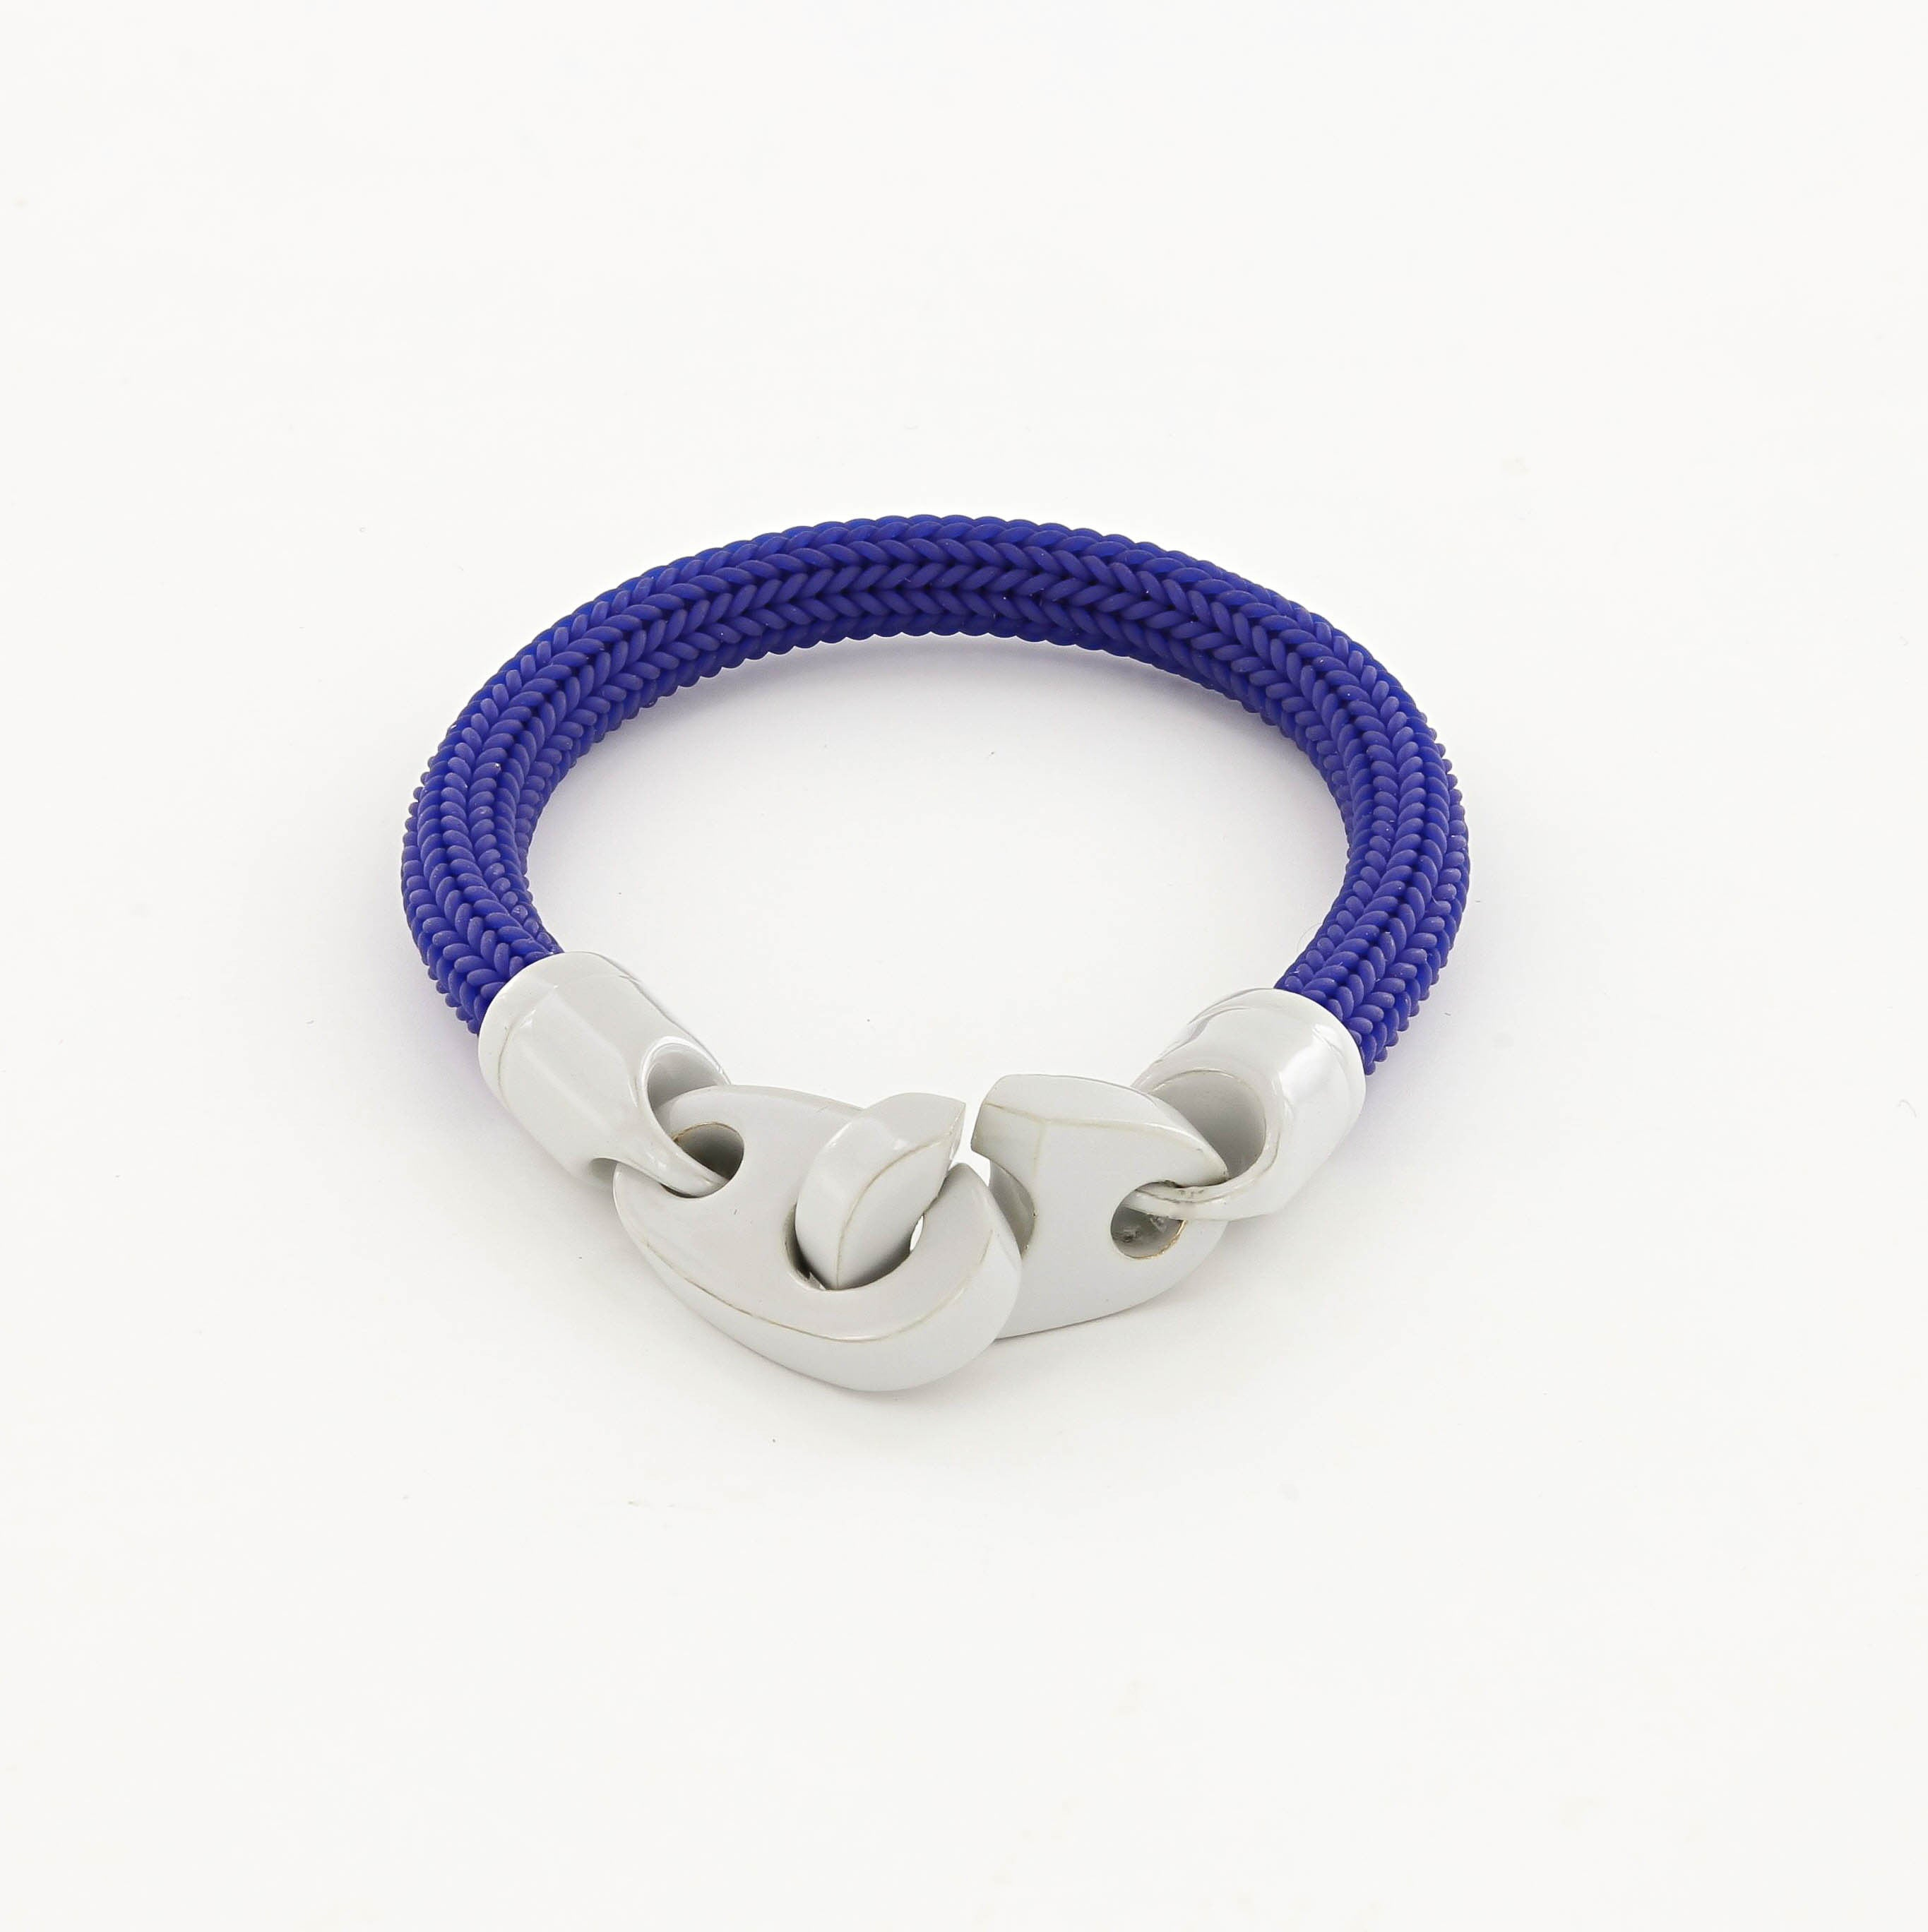 hands cool breeze img helping store bracelet rubber